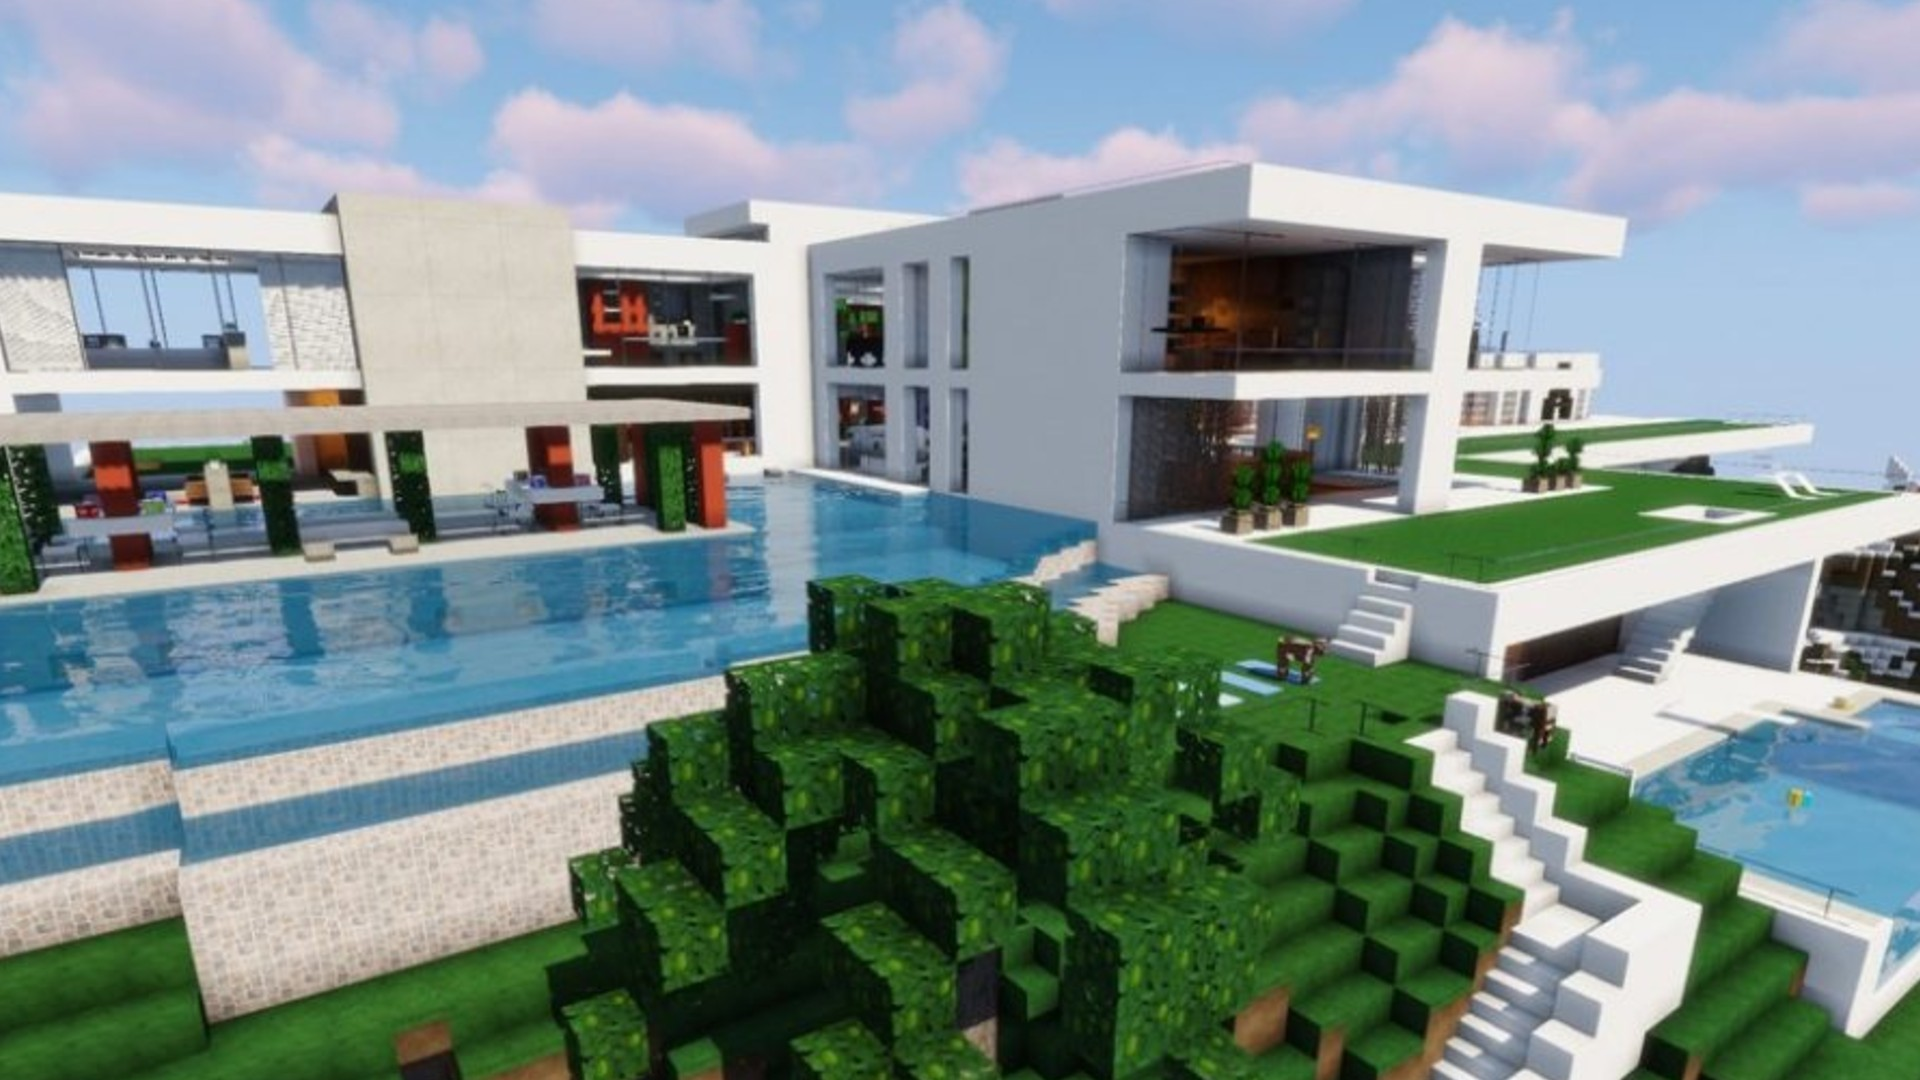 Cool Minecraft houses: ideas for your next build | PCGamesN on Awesome Ideas  id=63702